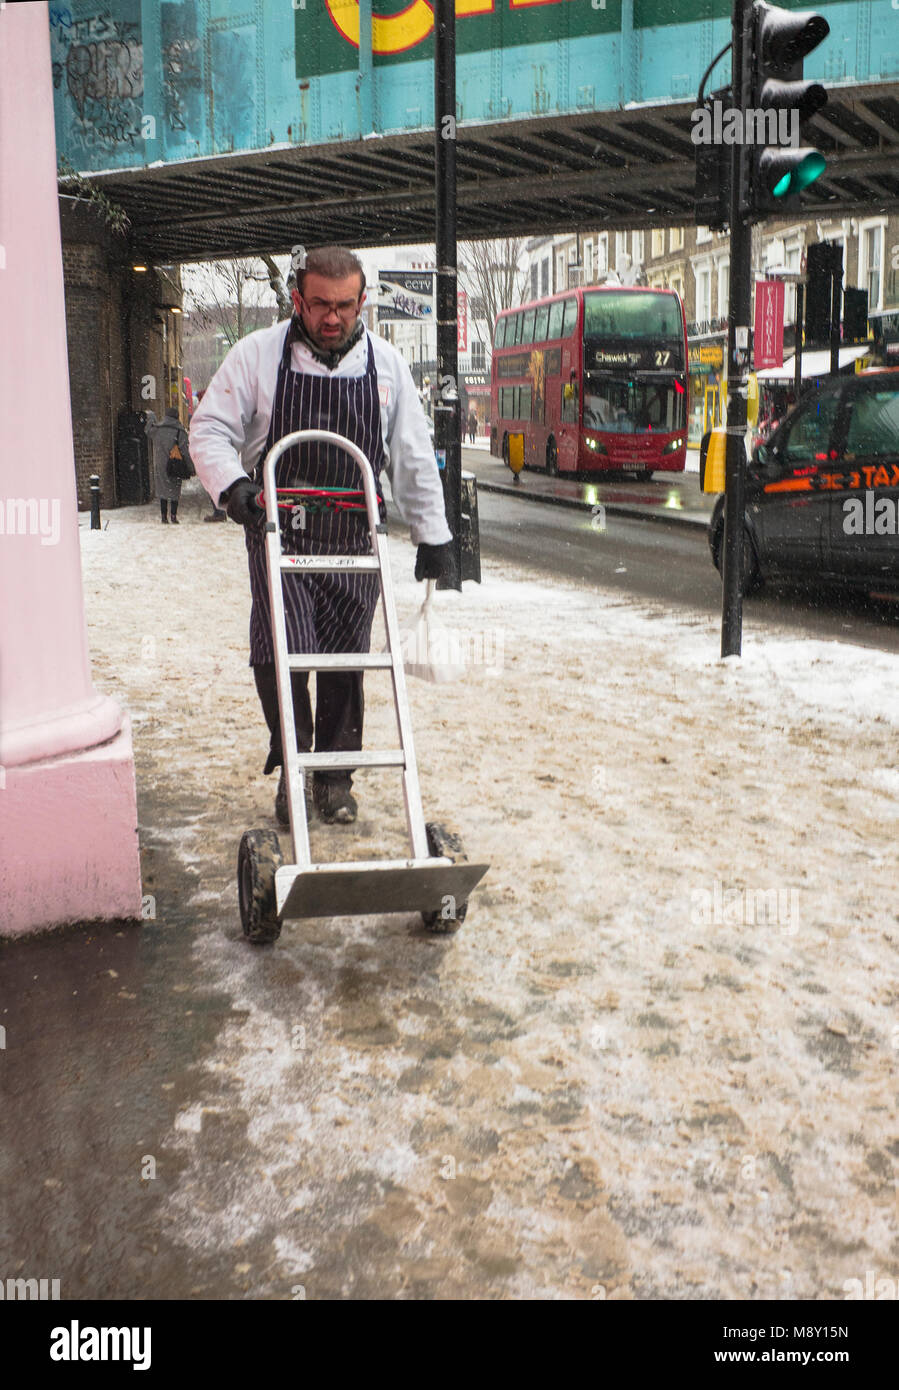 trader pushing barrow through snow camden market - Stock Image